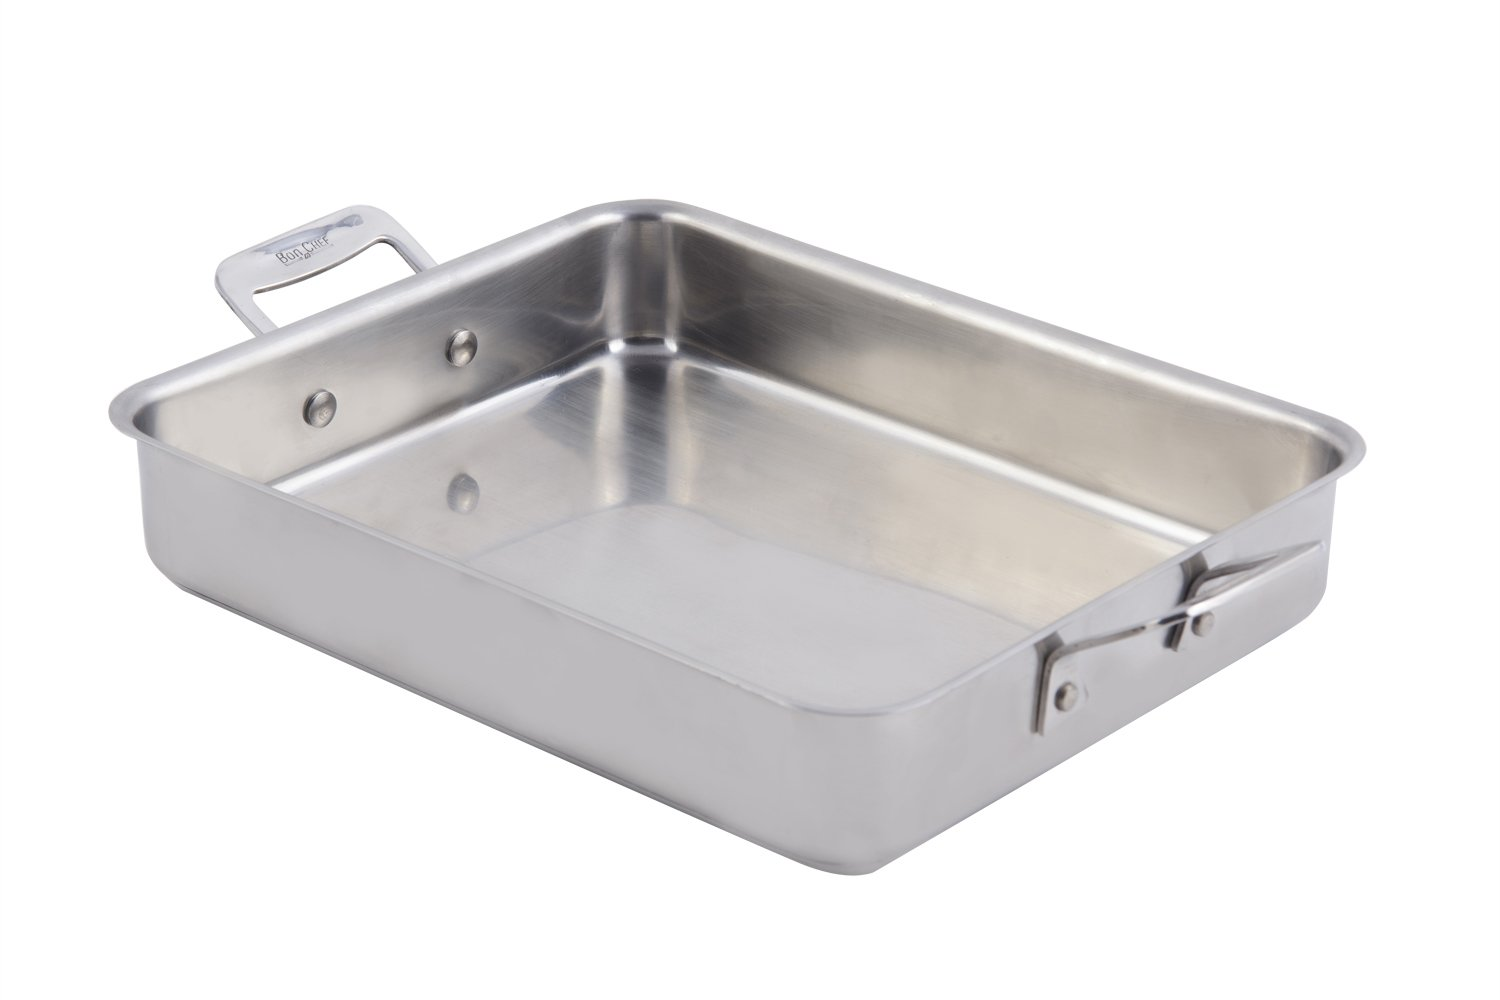 Bon Chef 60013CLD Stainless Steel Induction Bottom Cucina Small Square Pan, 3 quart Capacity, 11-1/2'' Length x 9-1/4'' Width x 2-1/2'' Height